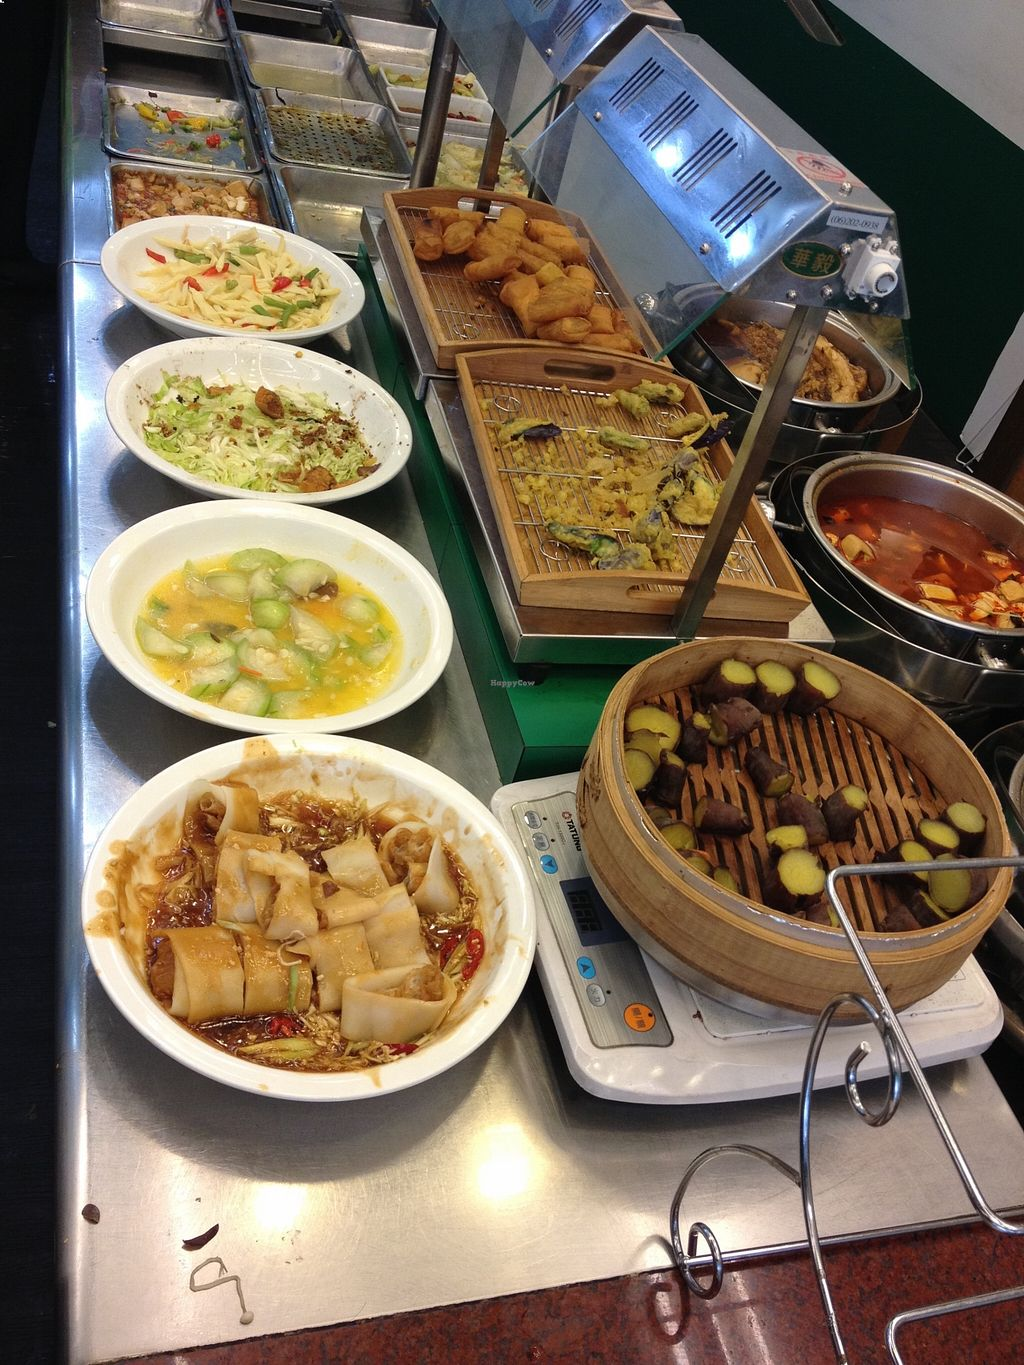 """Photo of Zhang Chun  by <a href=""""/members/profile/HollyCow"""">HollyCow</a> <br/>view of buffet <br/> August 20, 2015  - <a href='/contact/abuse/image/62121/114422'>Report</a>"""